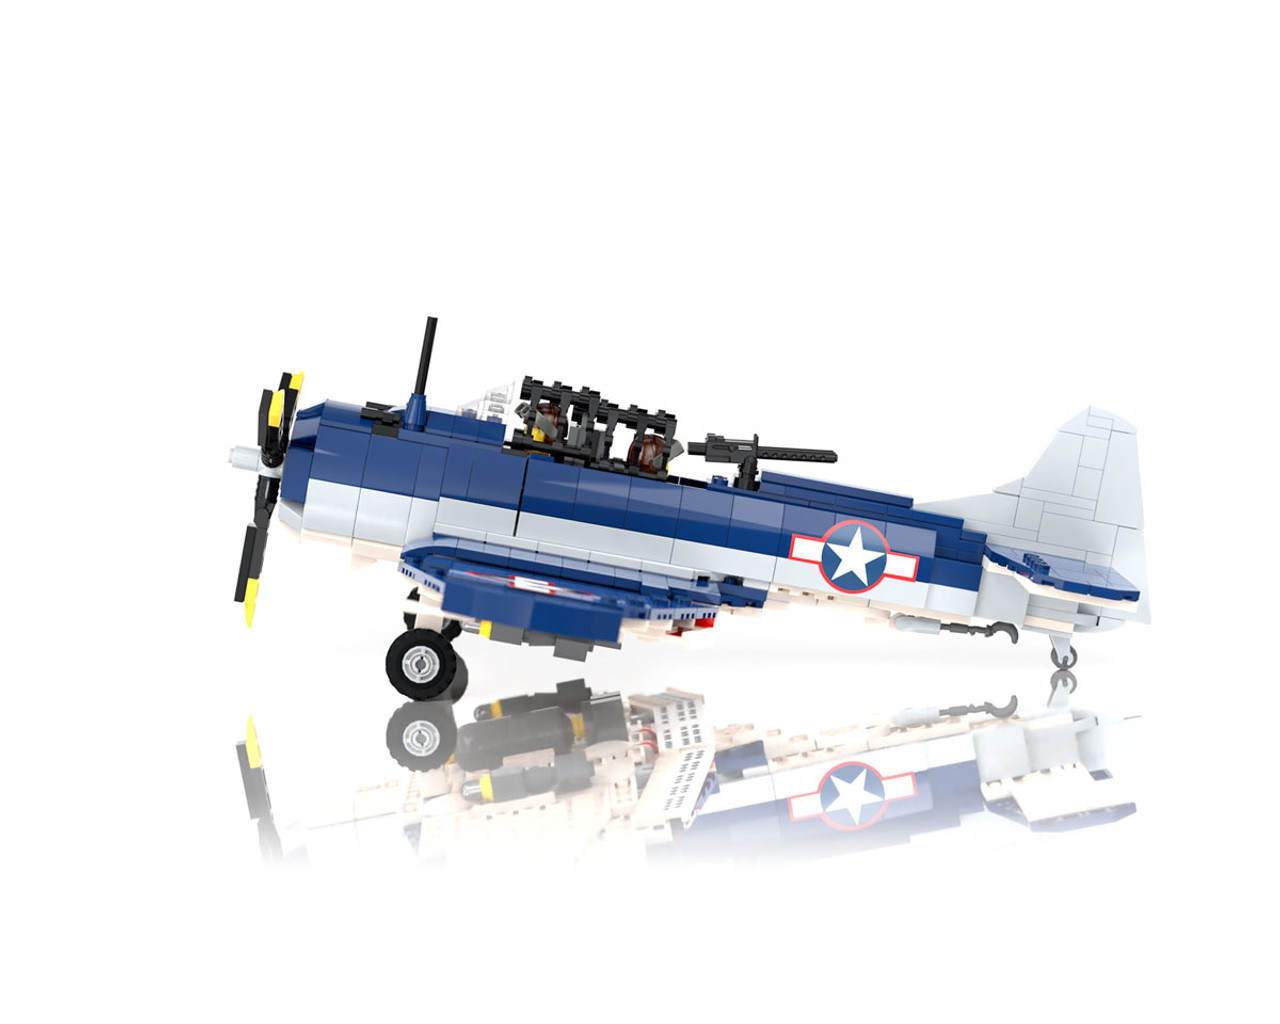 SBD-5 Dauntless - WWII Carrier-Based Scout/Dive Bomber